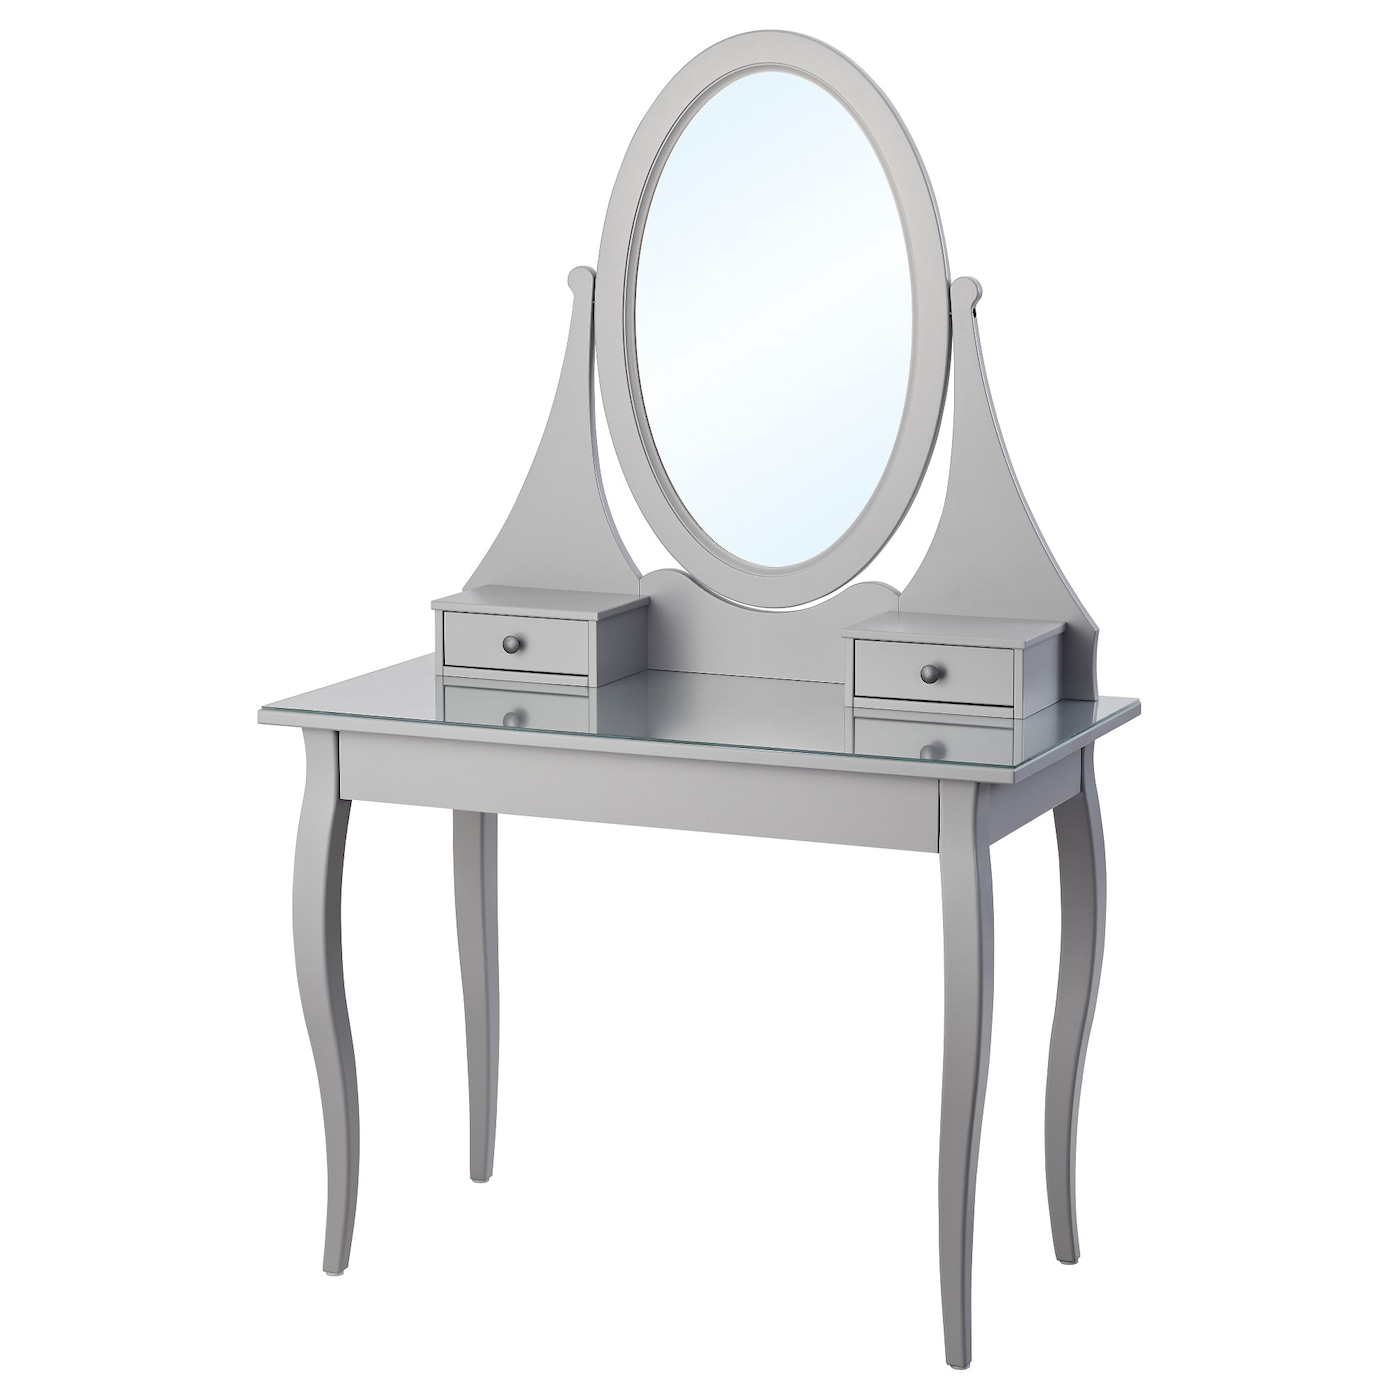 Hemnes dressing table with mirror grey 100x50 cm ikea for Ikea hemnes vanity table